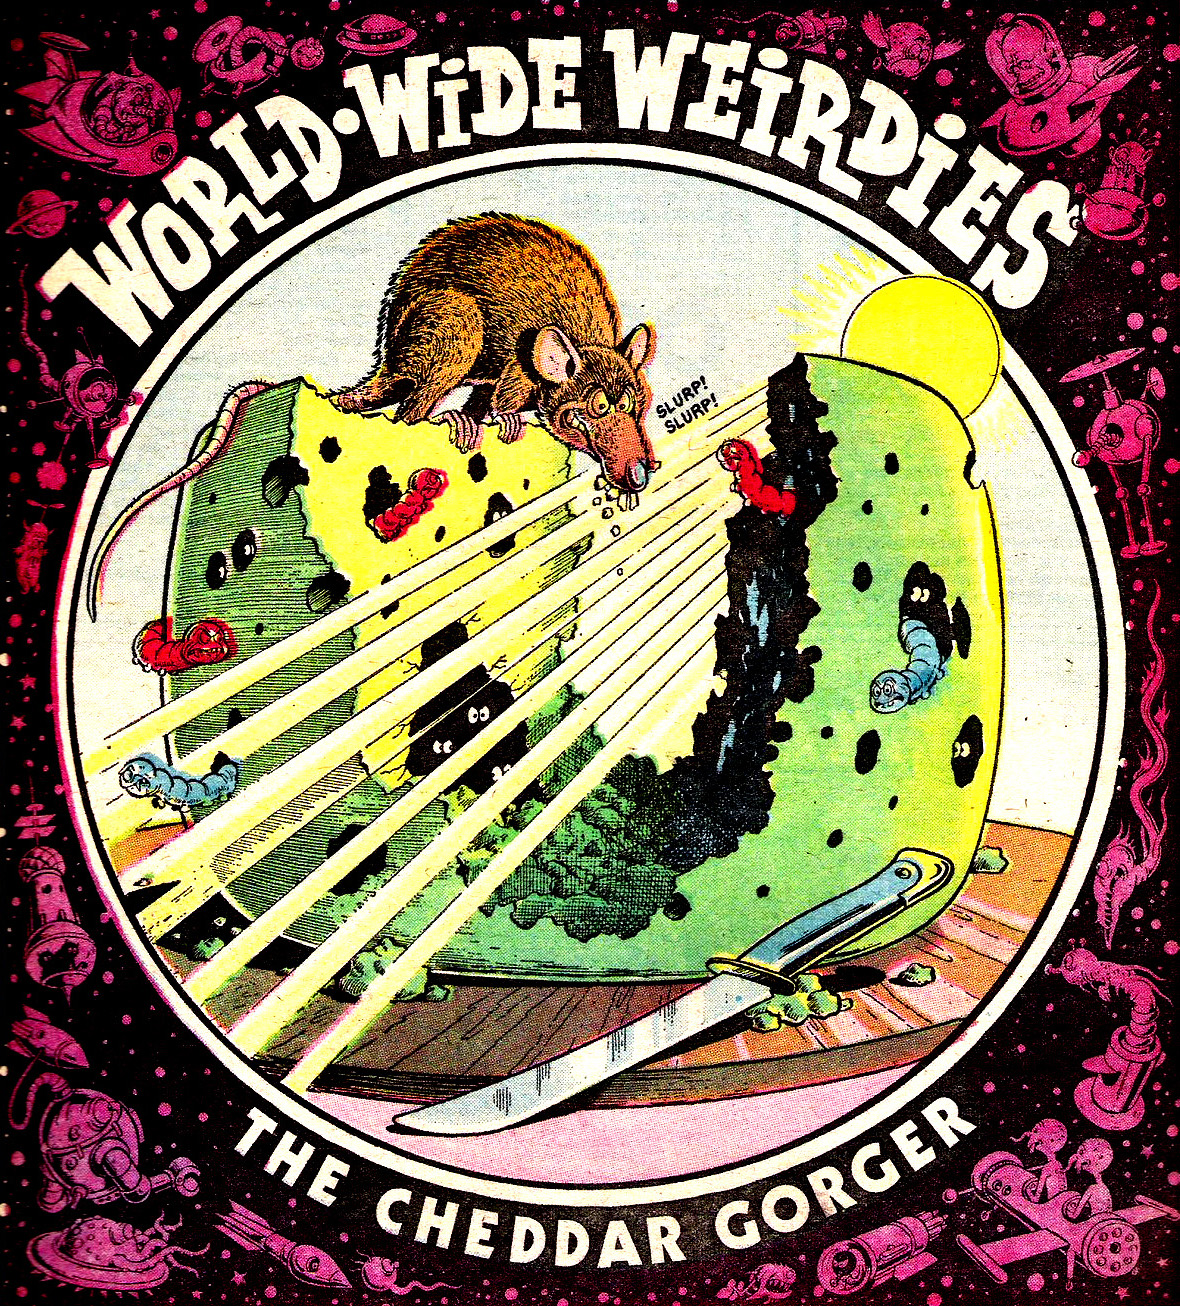 Ken Reid - World Wide Weirdies 78